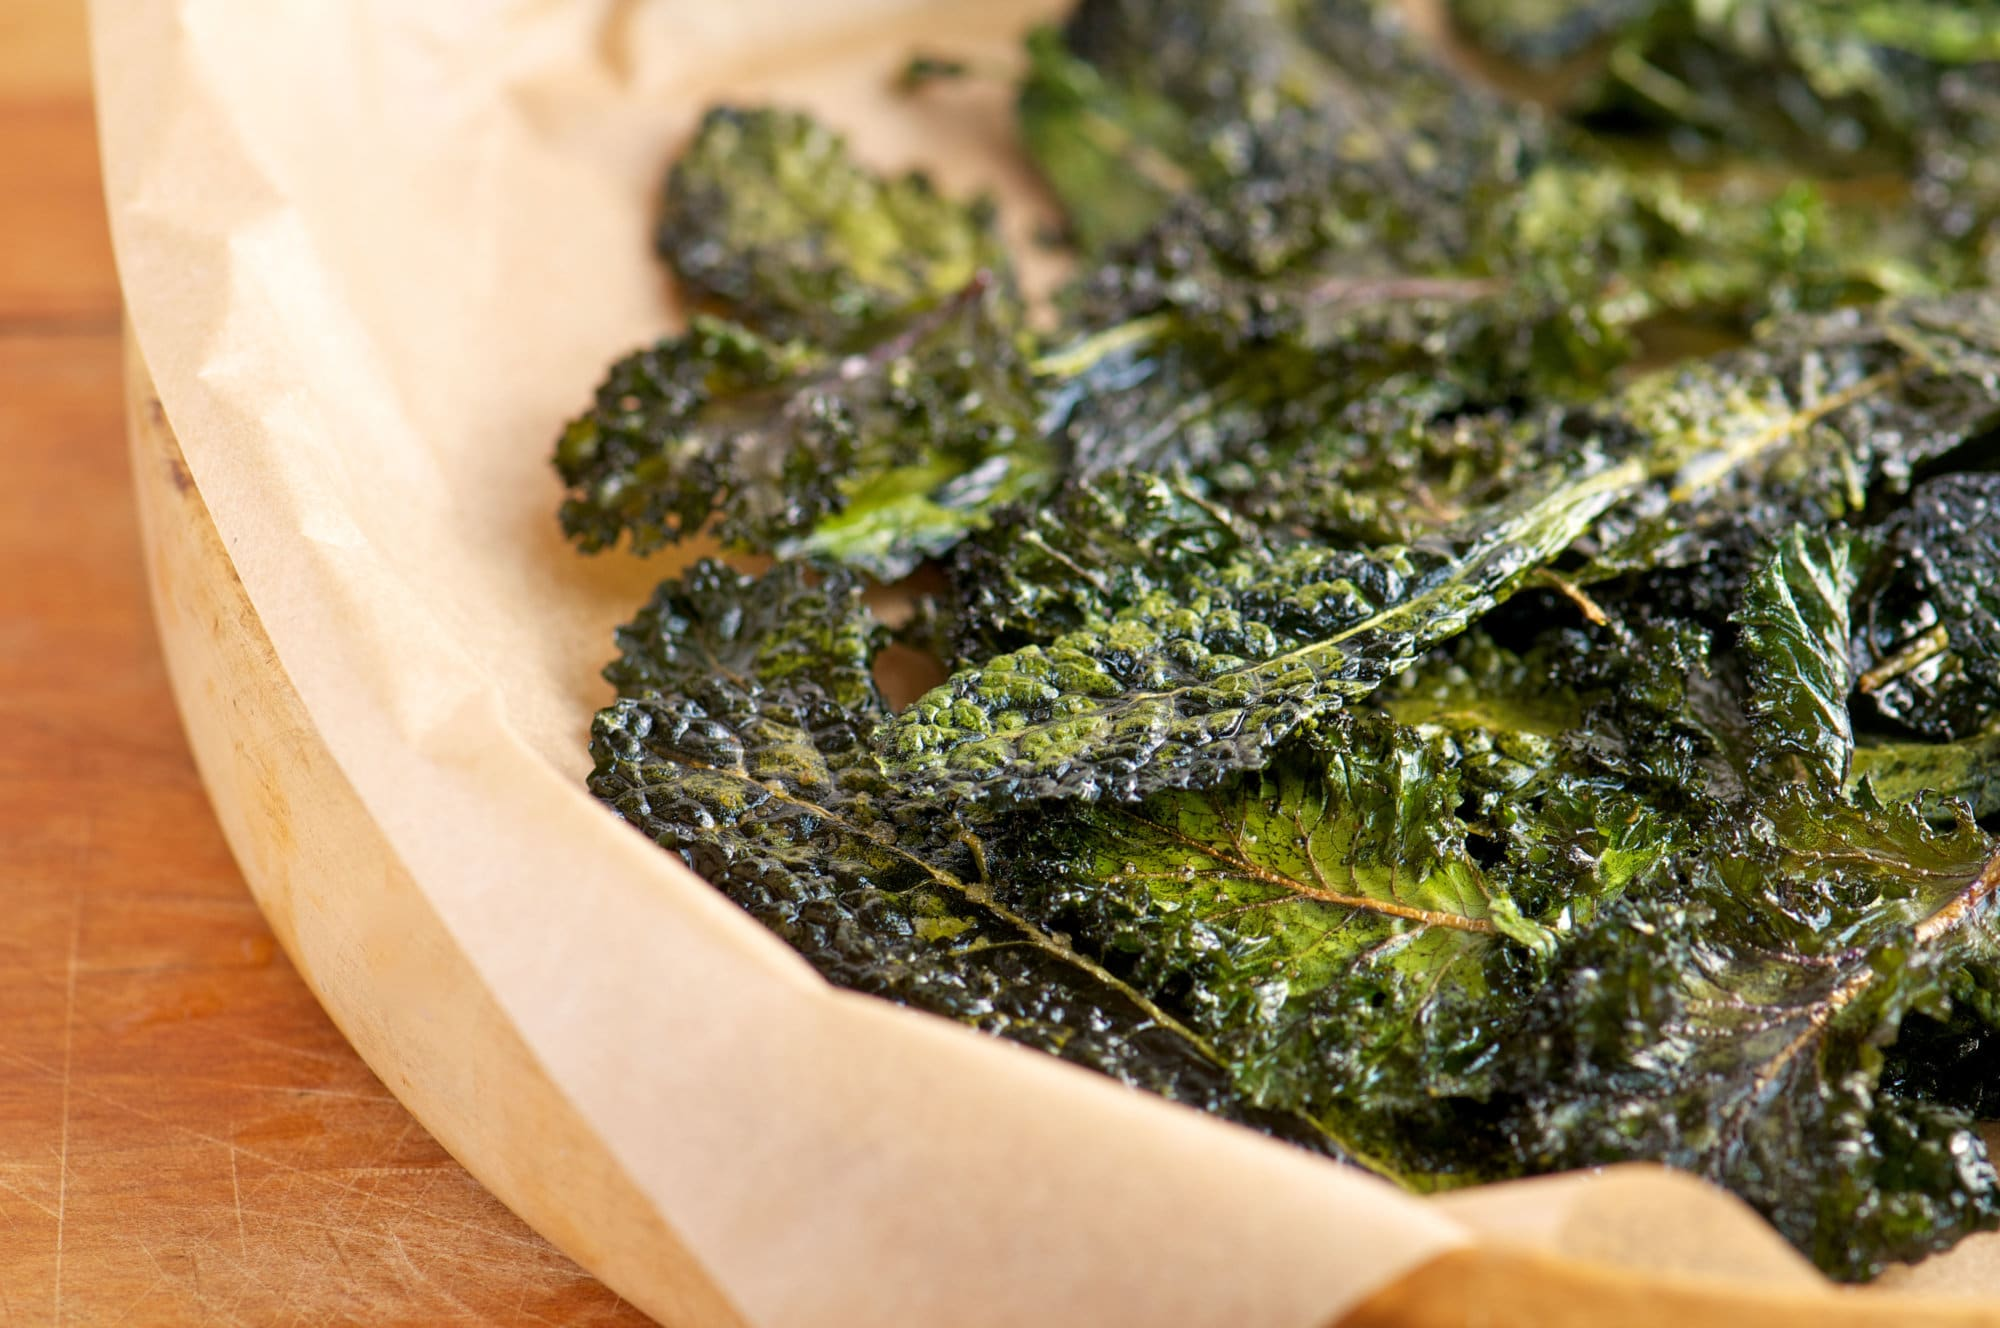 Homemade kale chips slow-roasted with olive oil and salt on parchment paper and wooden tray